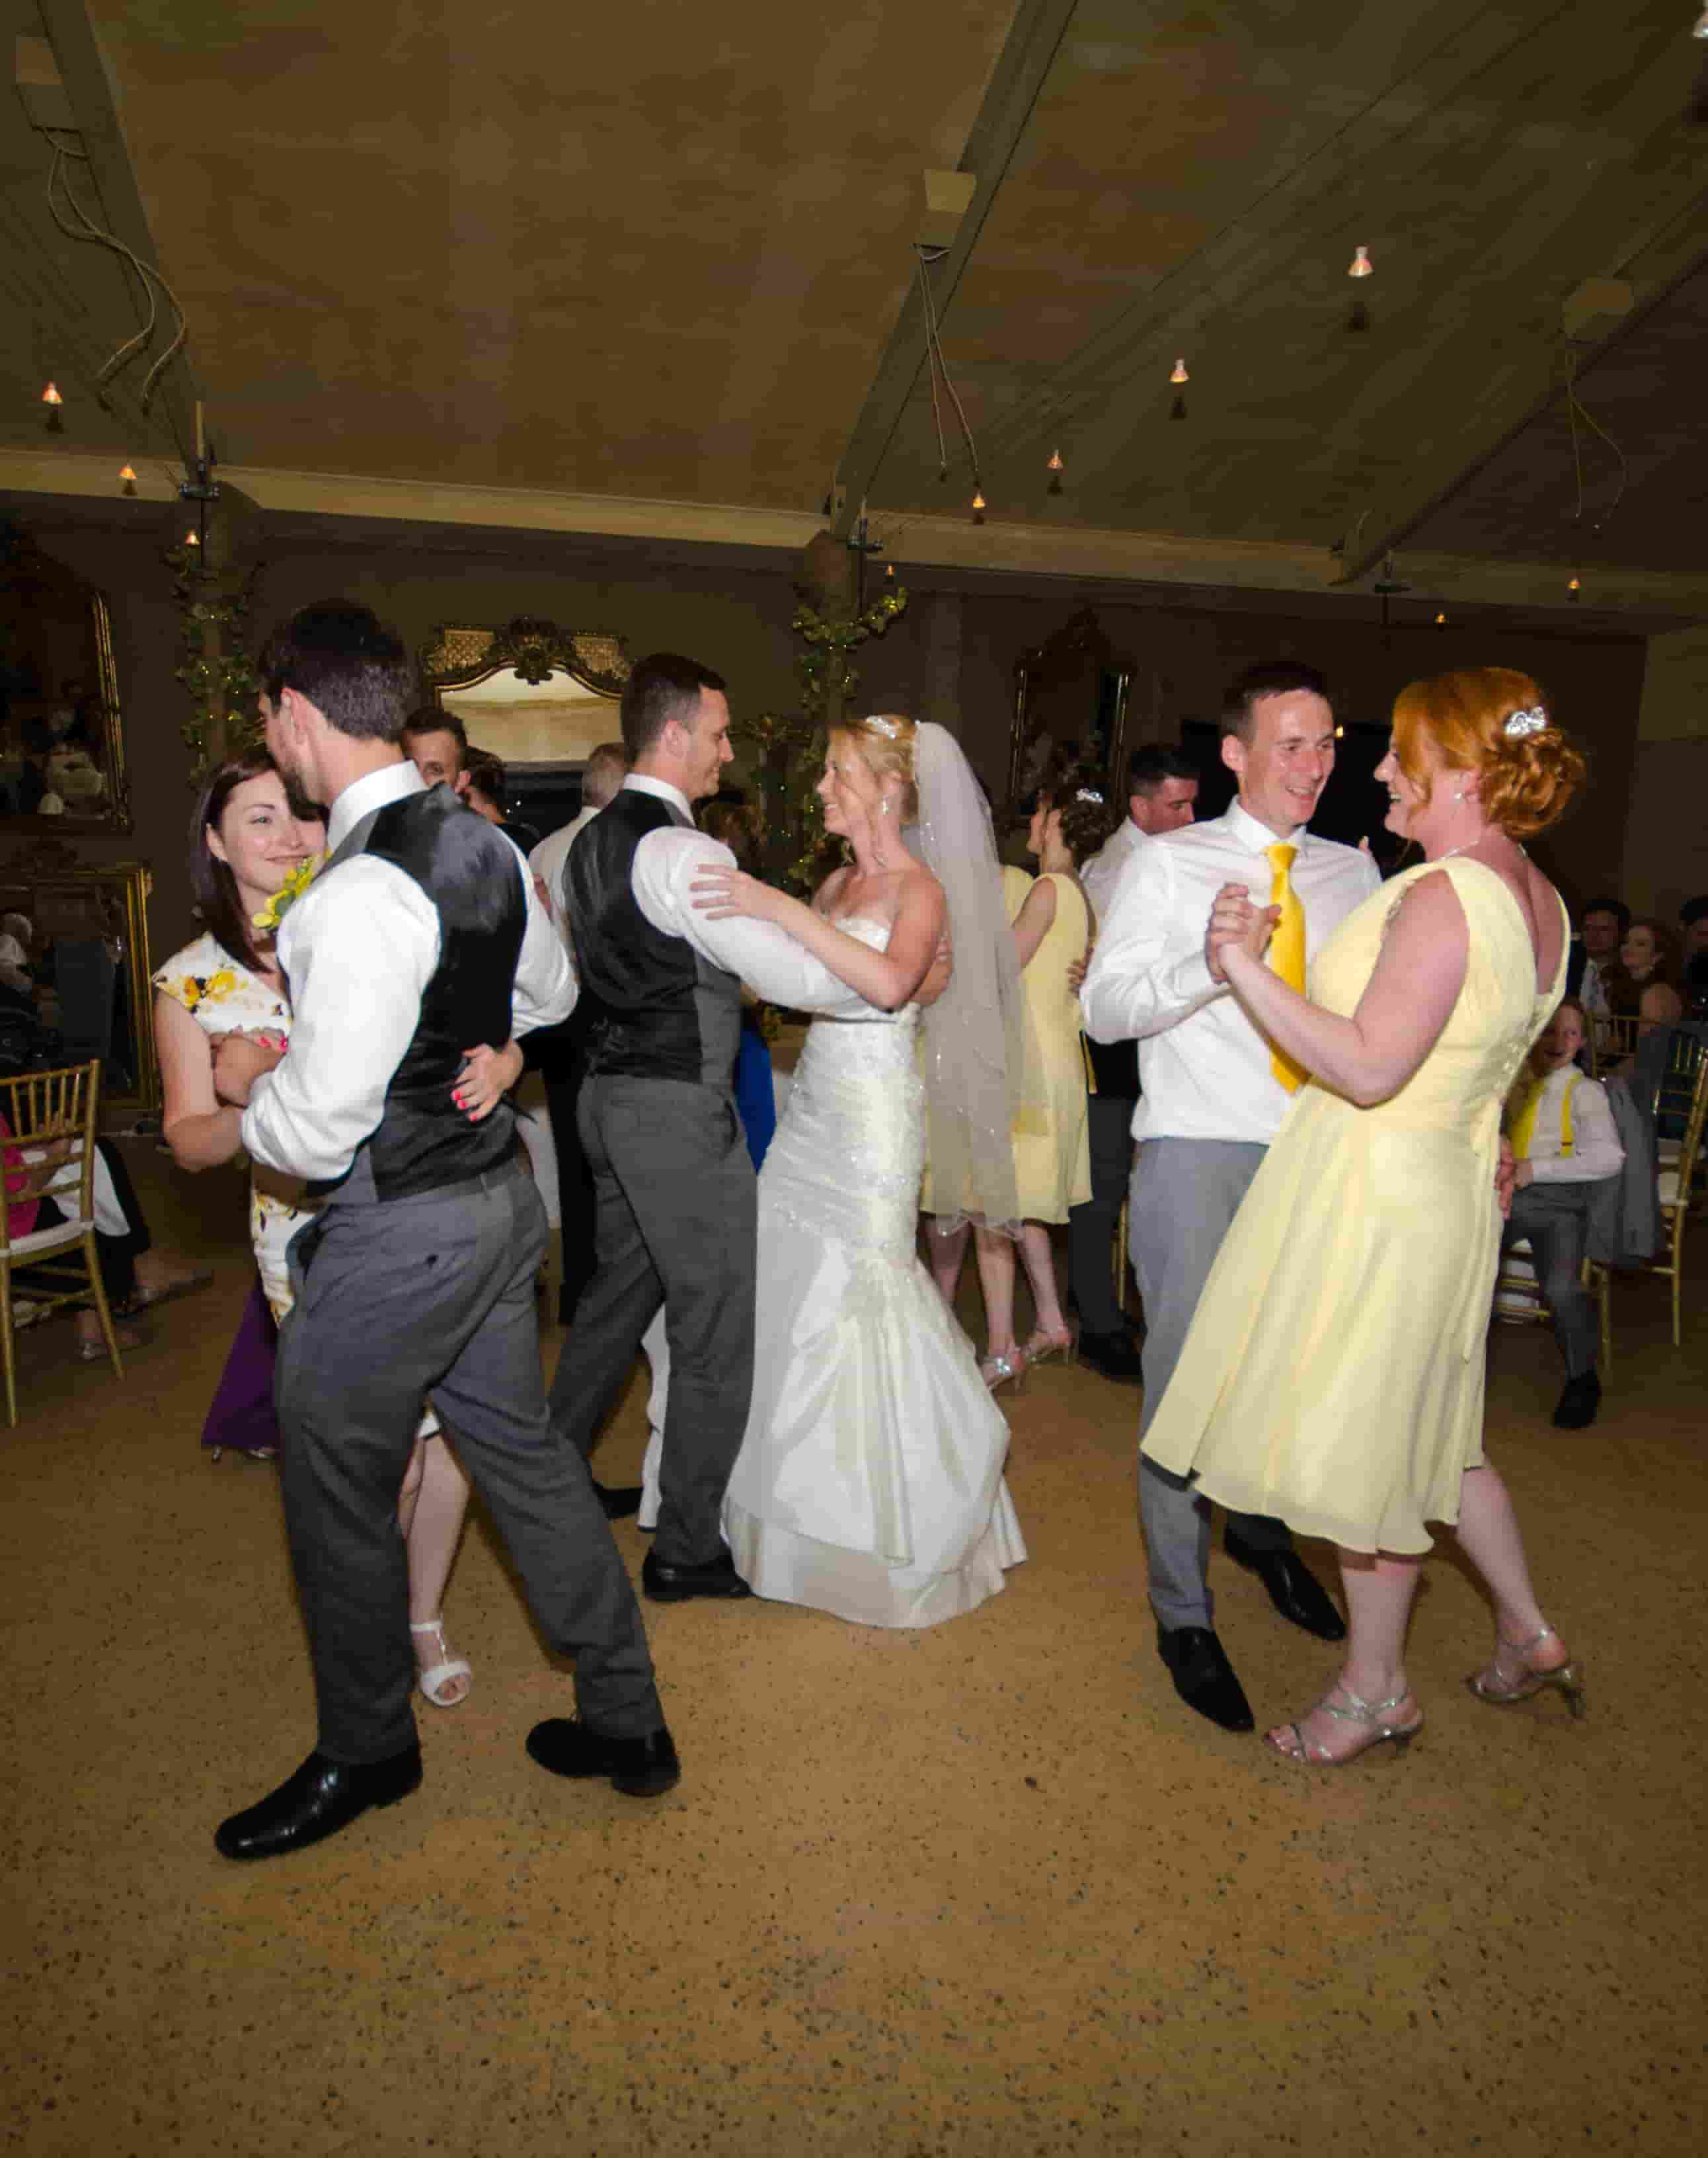 Bridal party on the dance floor at wedding